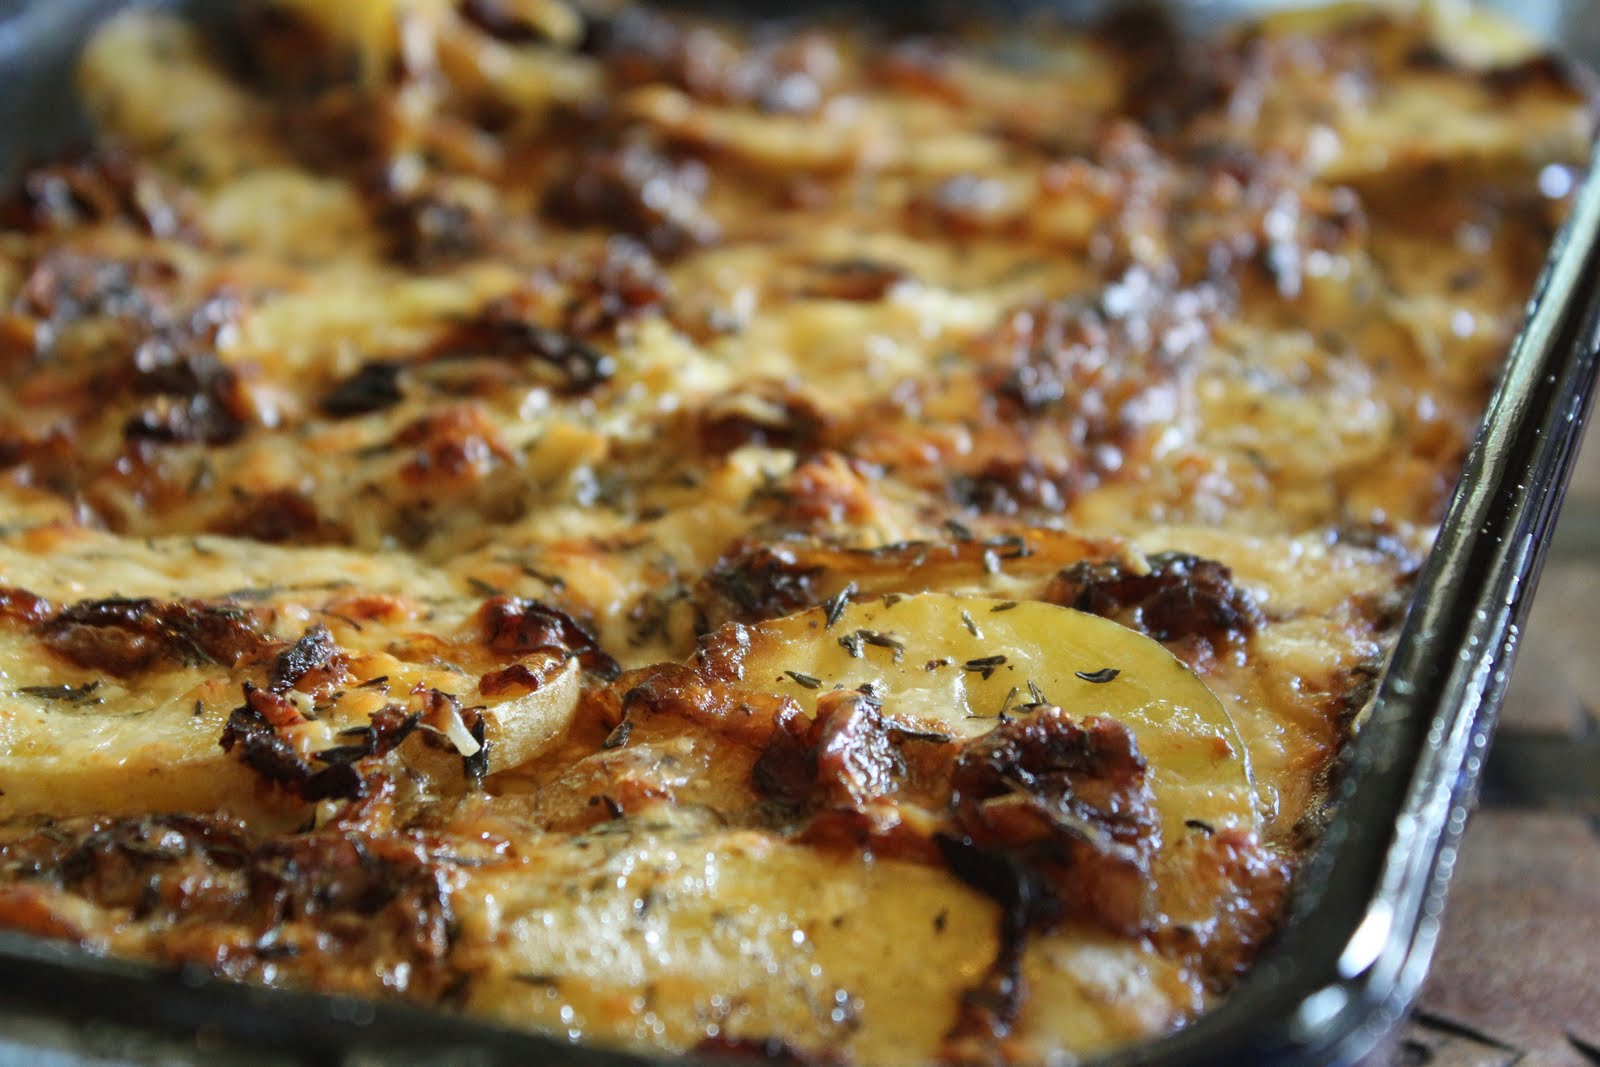 Thyme In Our Kitchen: Potato Gratin with Bacon and Thyme